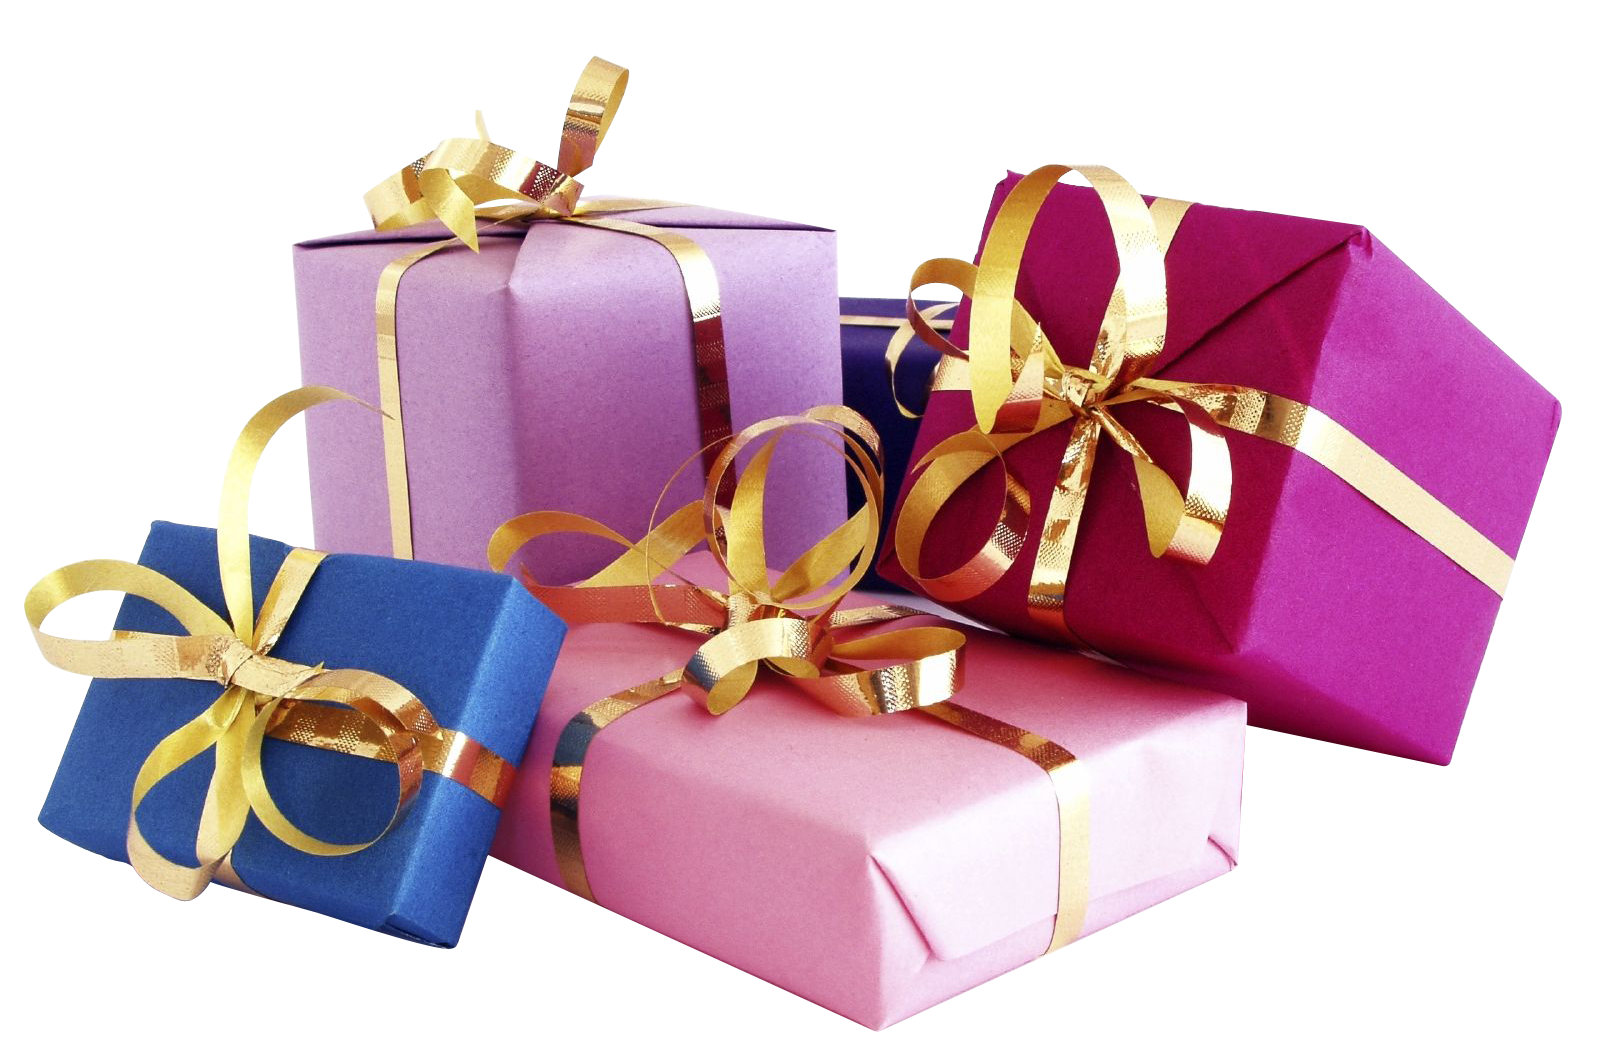 Gift Hd Png Transparent Gift Hd Png Images Pluspng